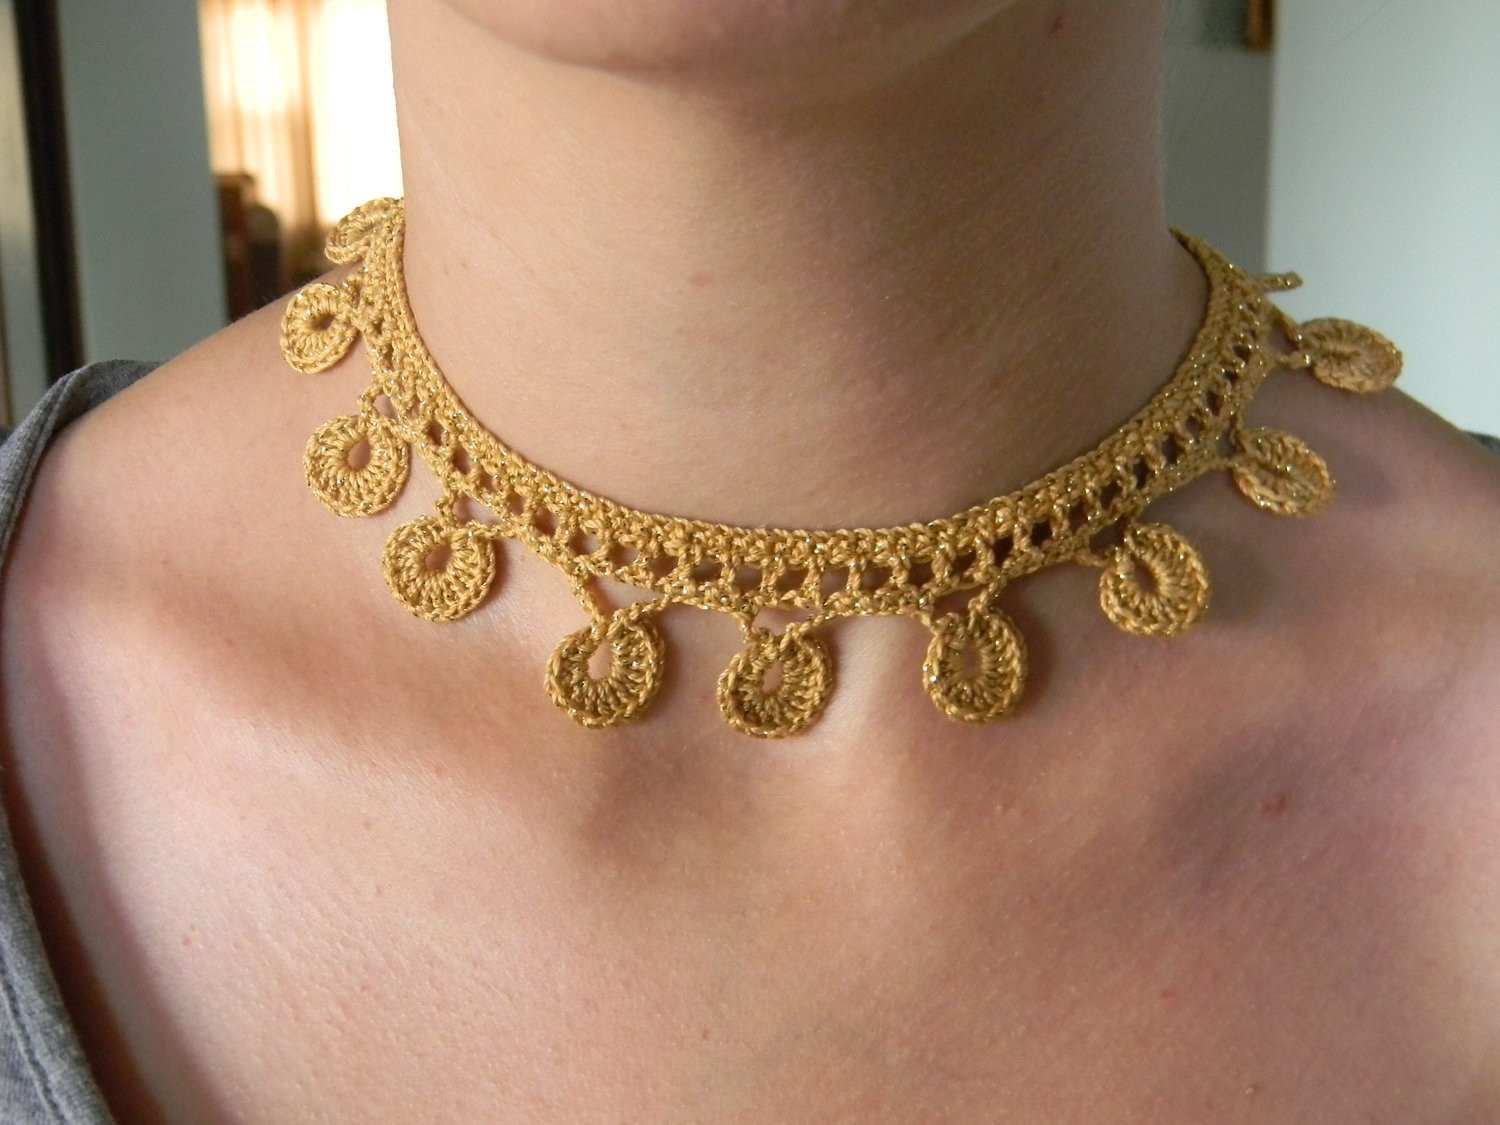 Crochet Chokers Luxury Crochet Necklace Pattern Pdf for Golden Coins Of Awesome 49 Photos Crochet Chokers